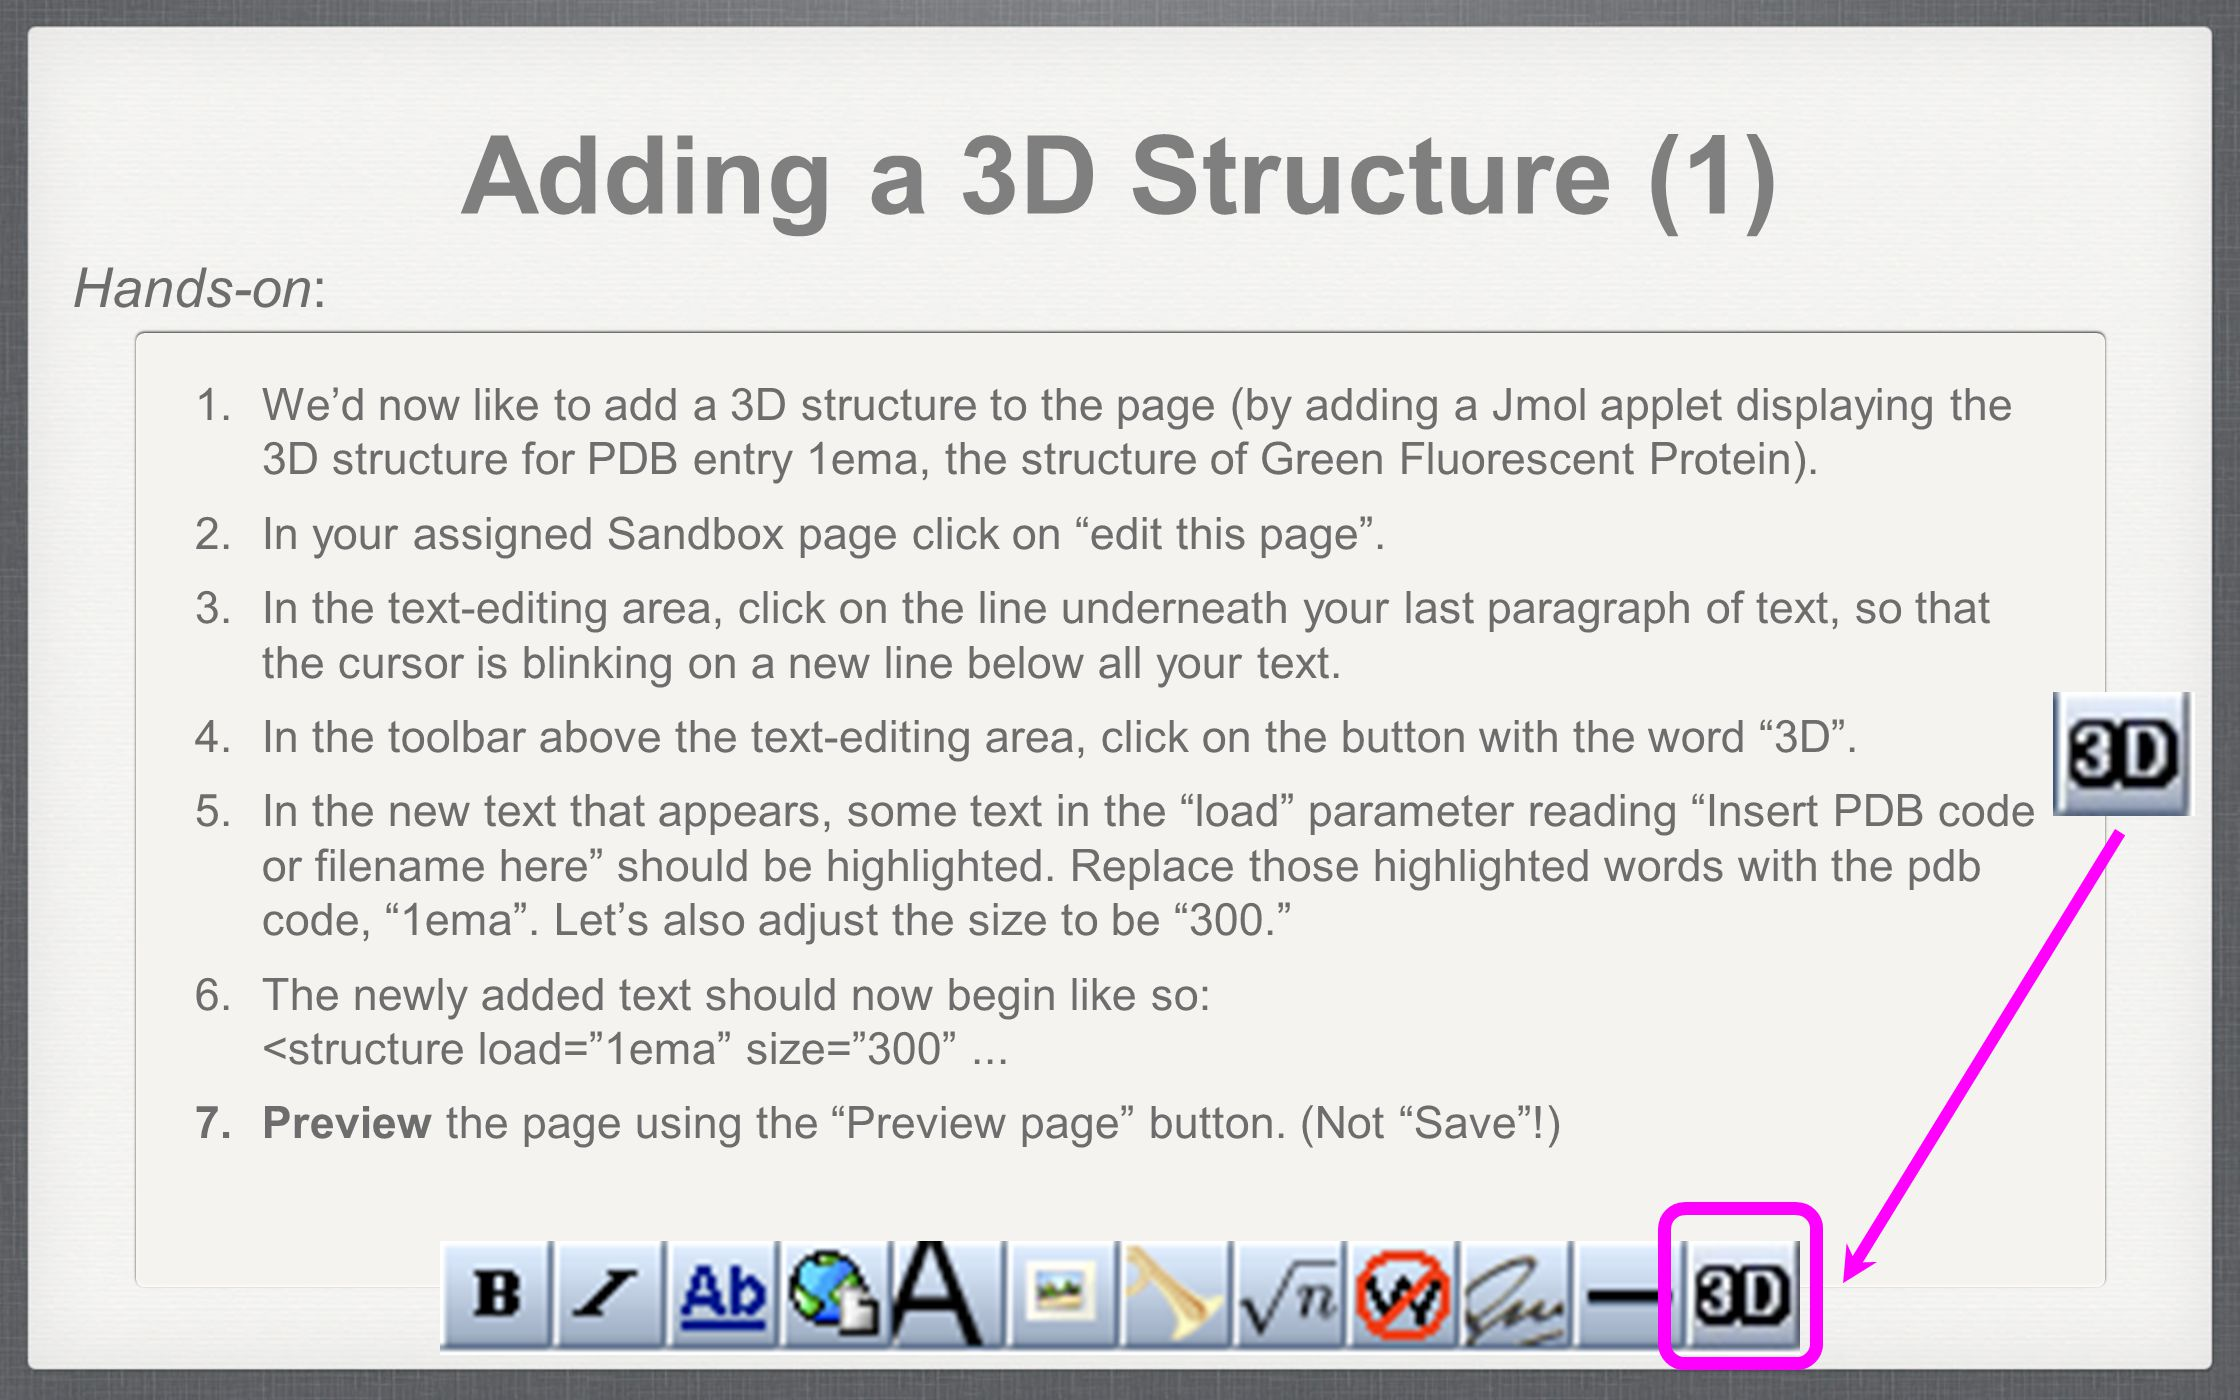 Adding a 3D Structure (1) 1.